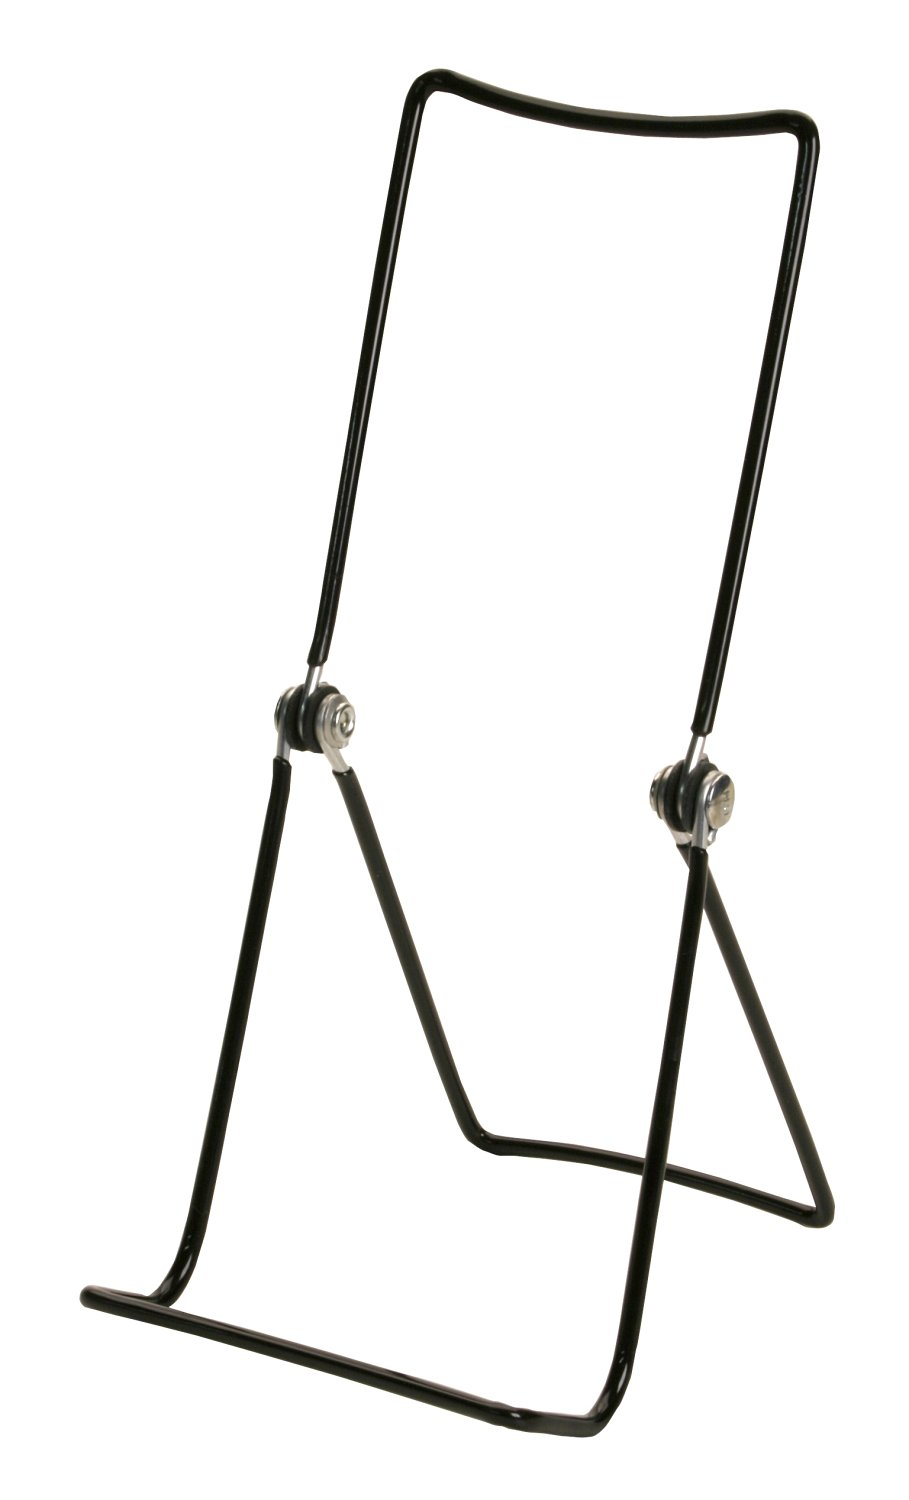 """Gibson Holders 12 3AB Adjustable Wire Display Easels- 3.75"""" W x 8"""" H with 1.5"""" display ledge, Black"""